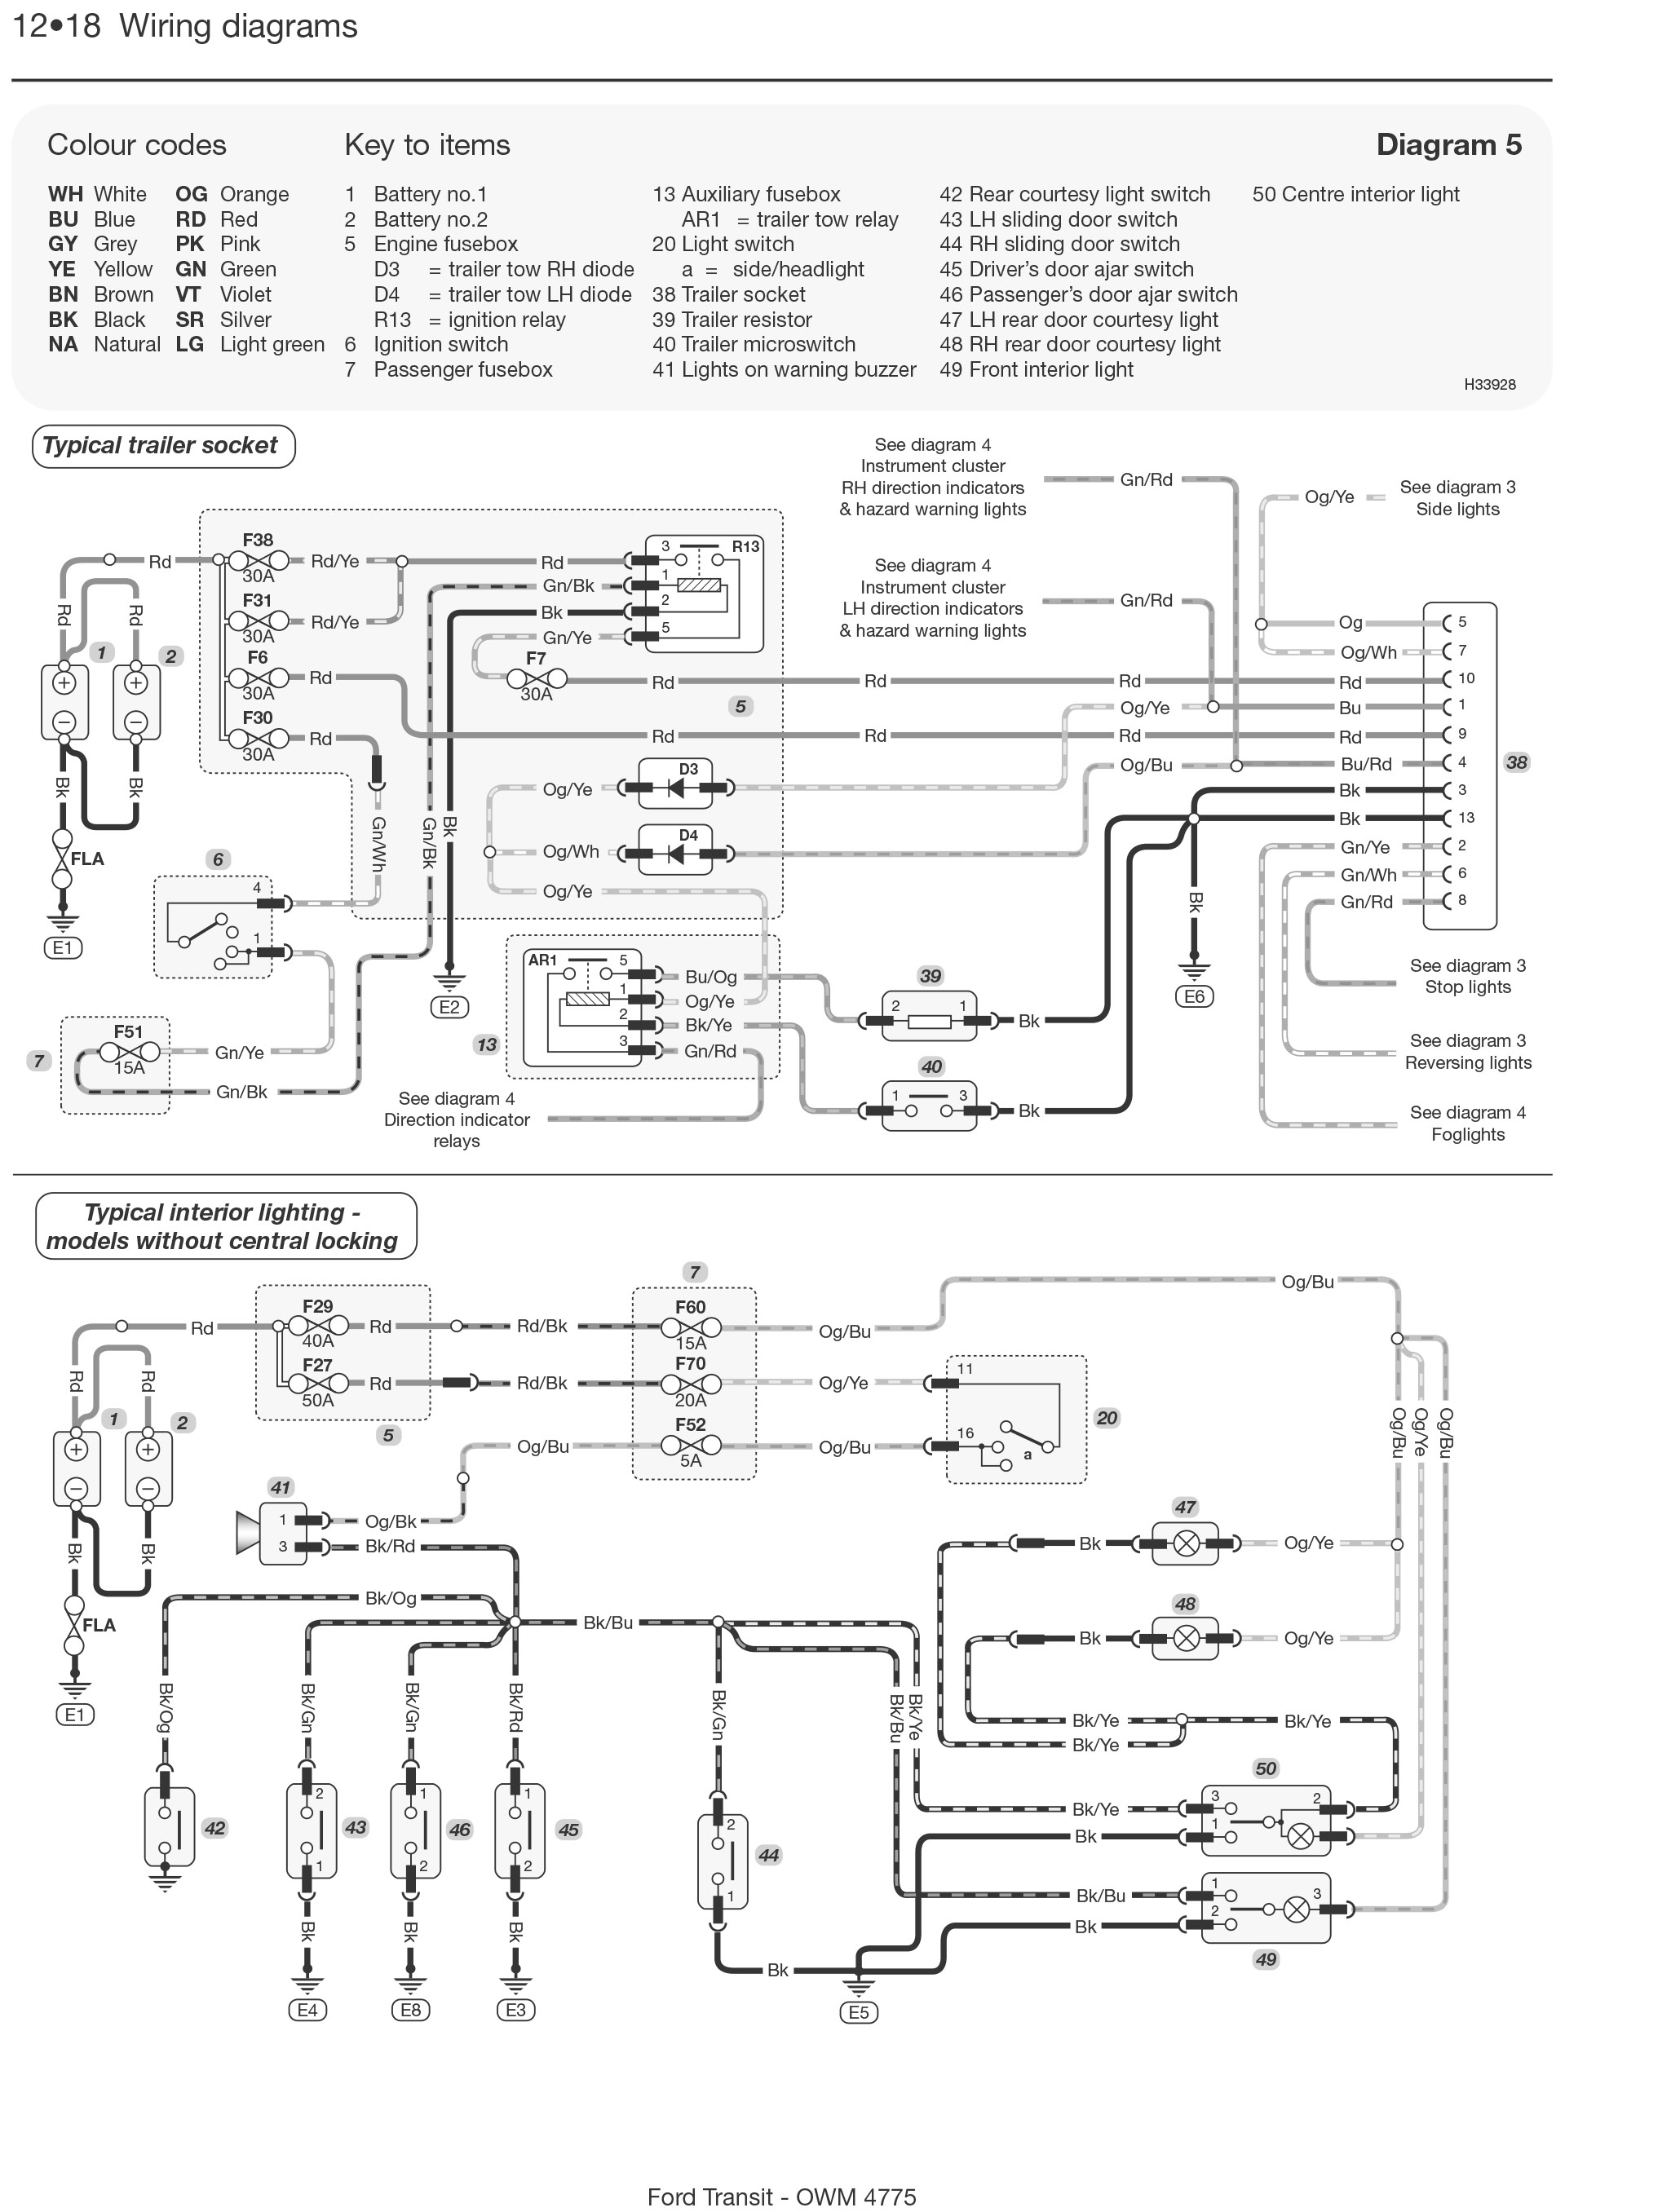 [SCHEMATICS_4LK]  2016 Ford Transit Wiring Diagram Download - renewfest | Ford Transit Wiring Diagram |  | Weebly